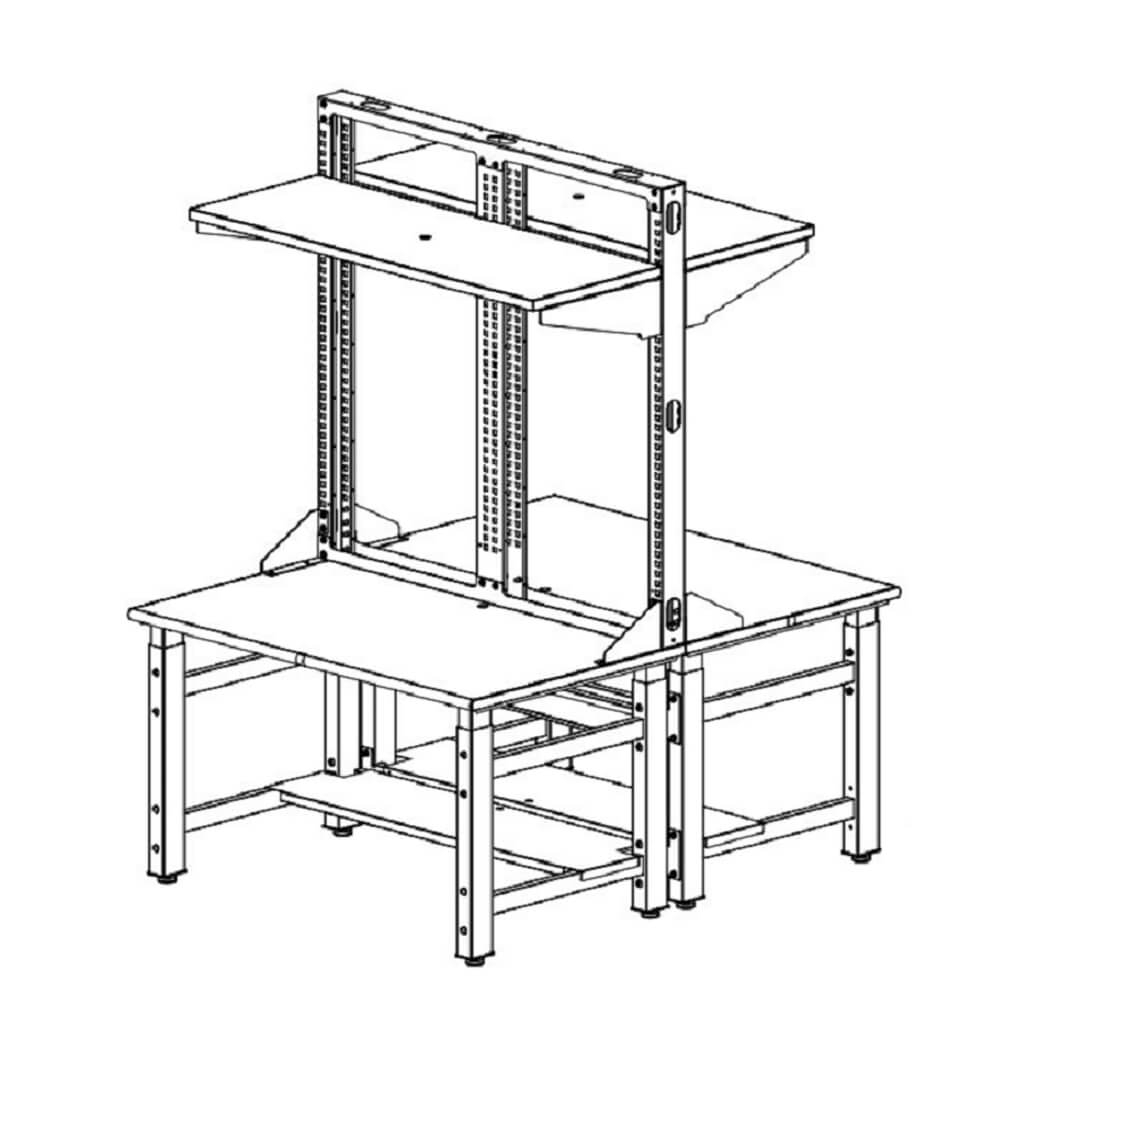 industrial-workbench-portable-work-benches.jpg